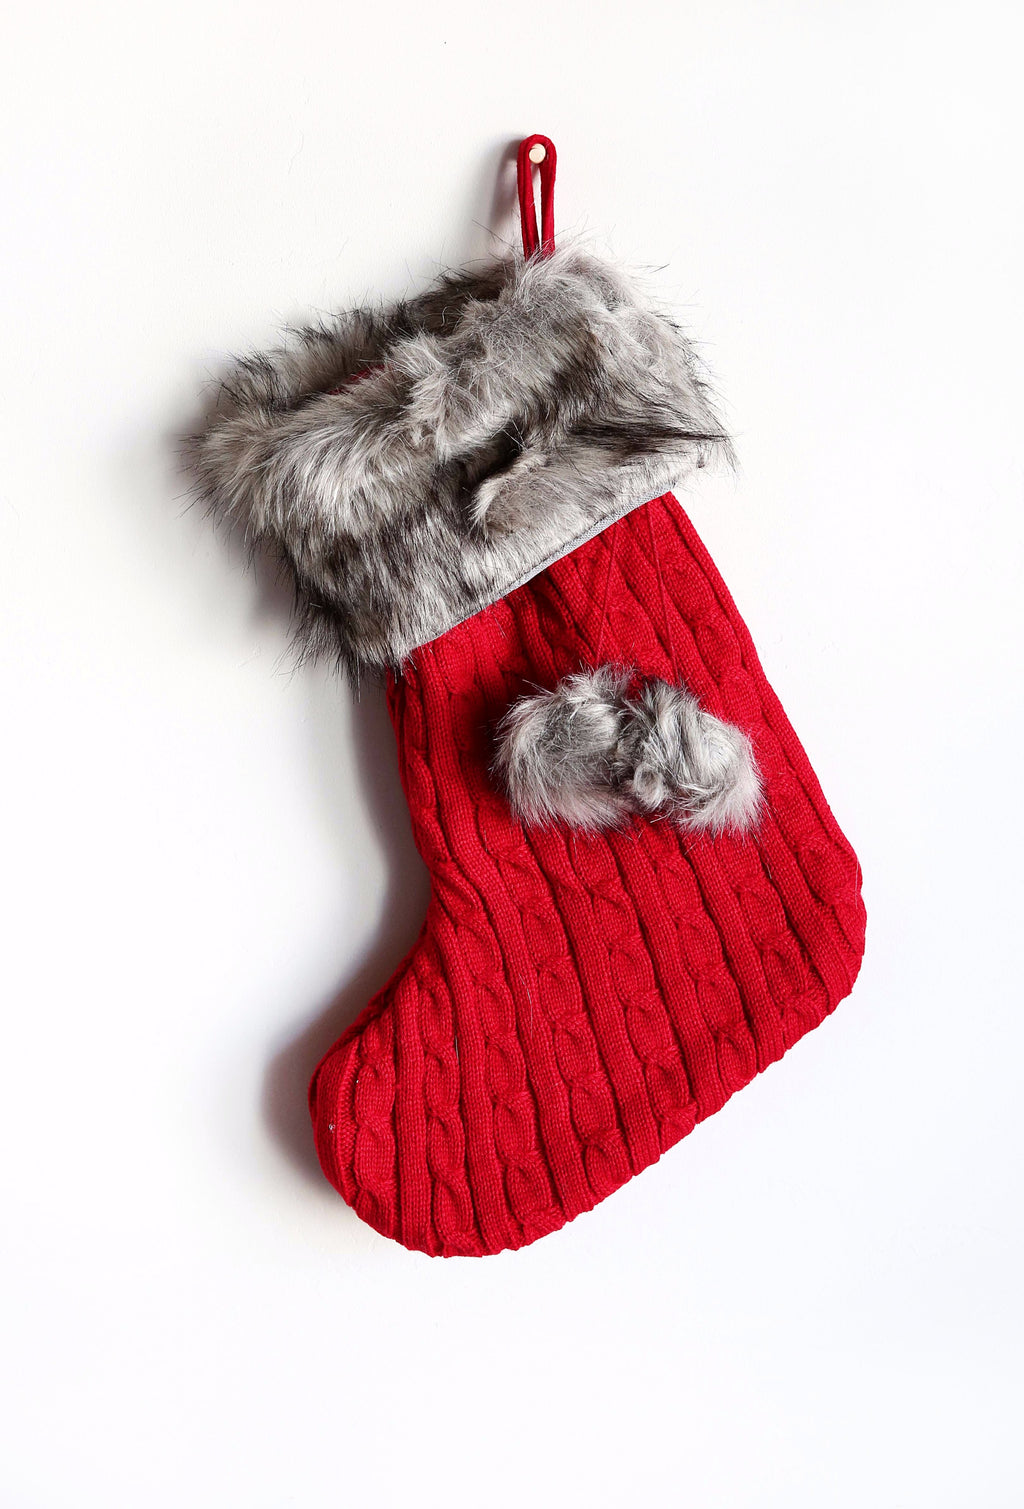 RED KNIT STOCKING WITH FUR CUFF AND BALLS